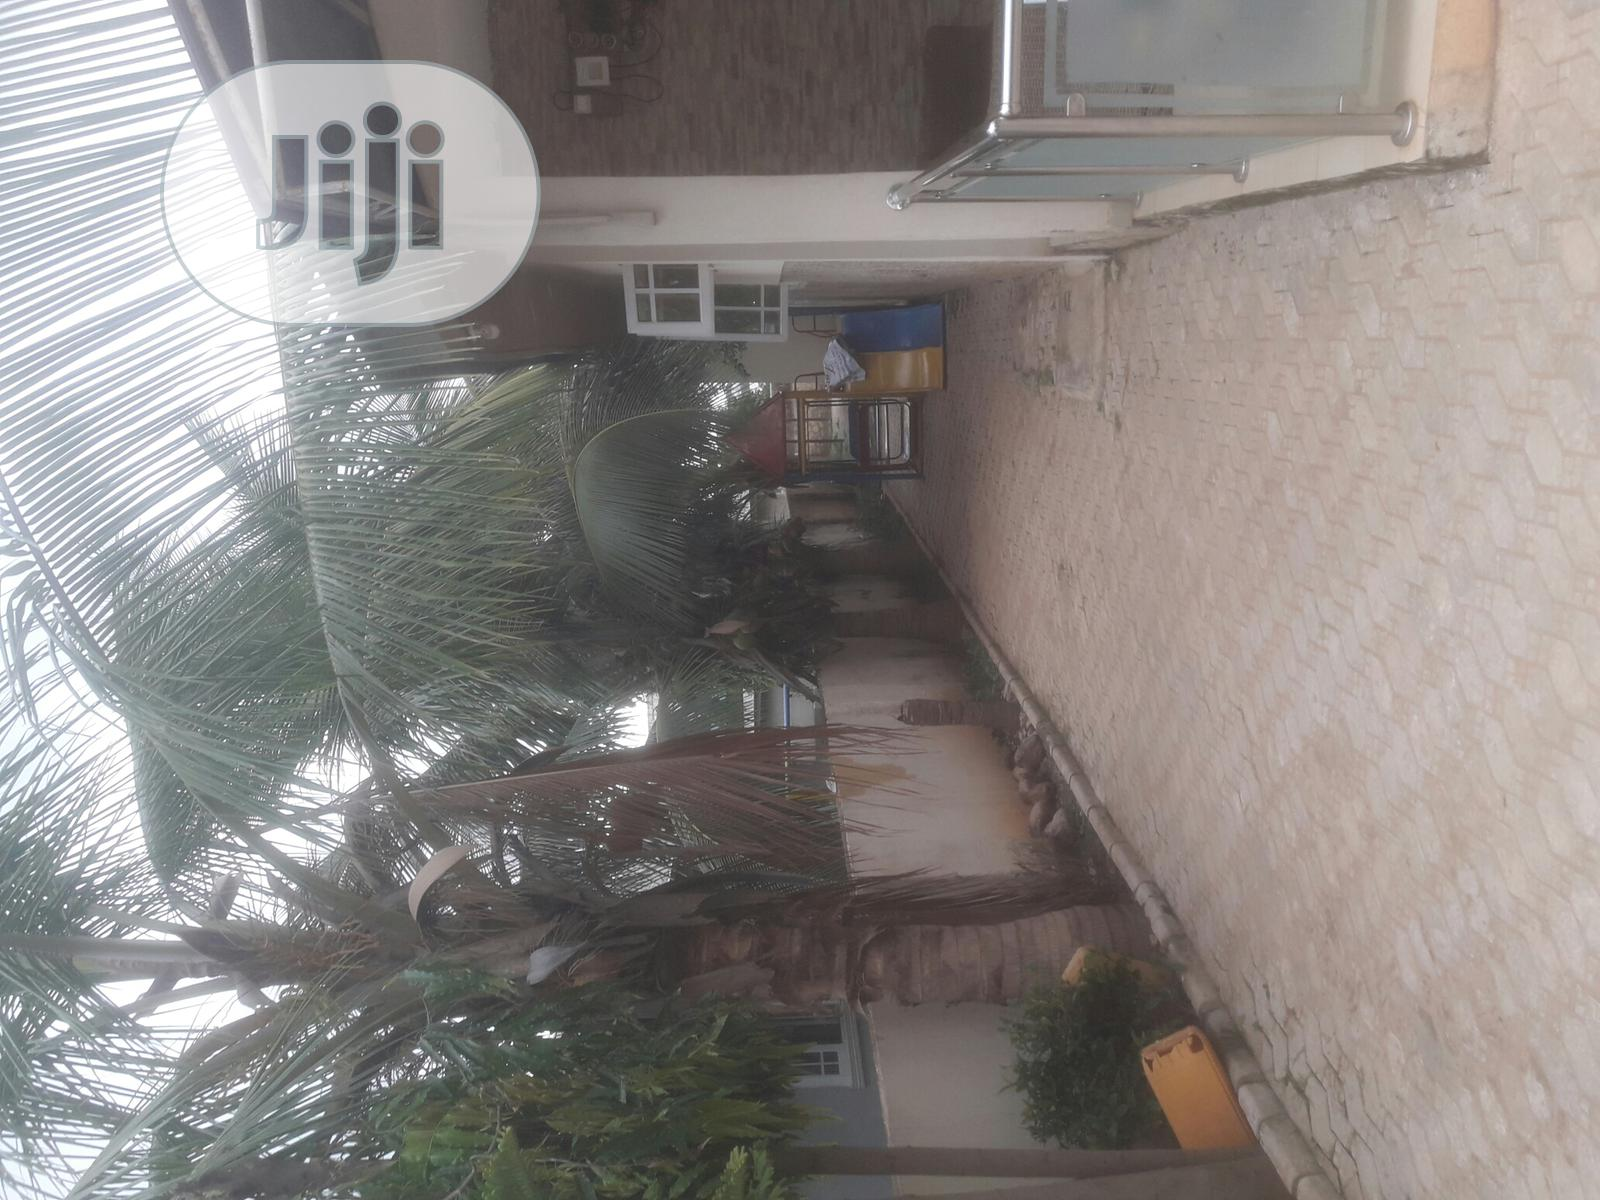 3 Bedrooms Fully Detached Bungalow With 2 Rooms BQ In Galadimawa Abuja | Houses & Apartments For Sale for sale in Galadimawa, Abuja (FCT) State, Nigeria